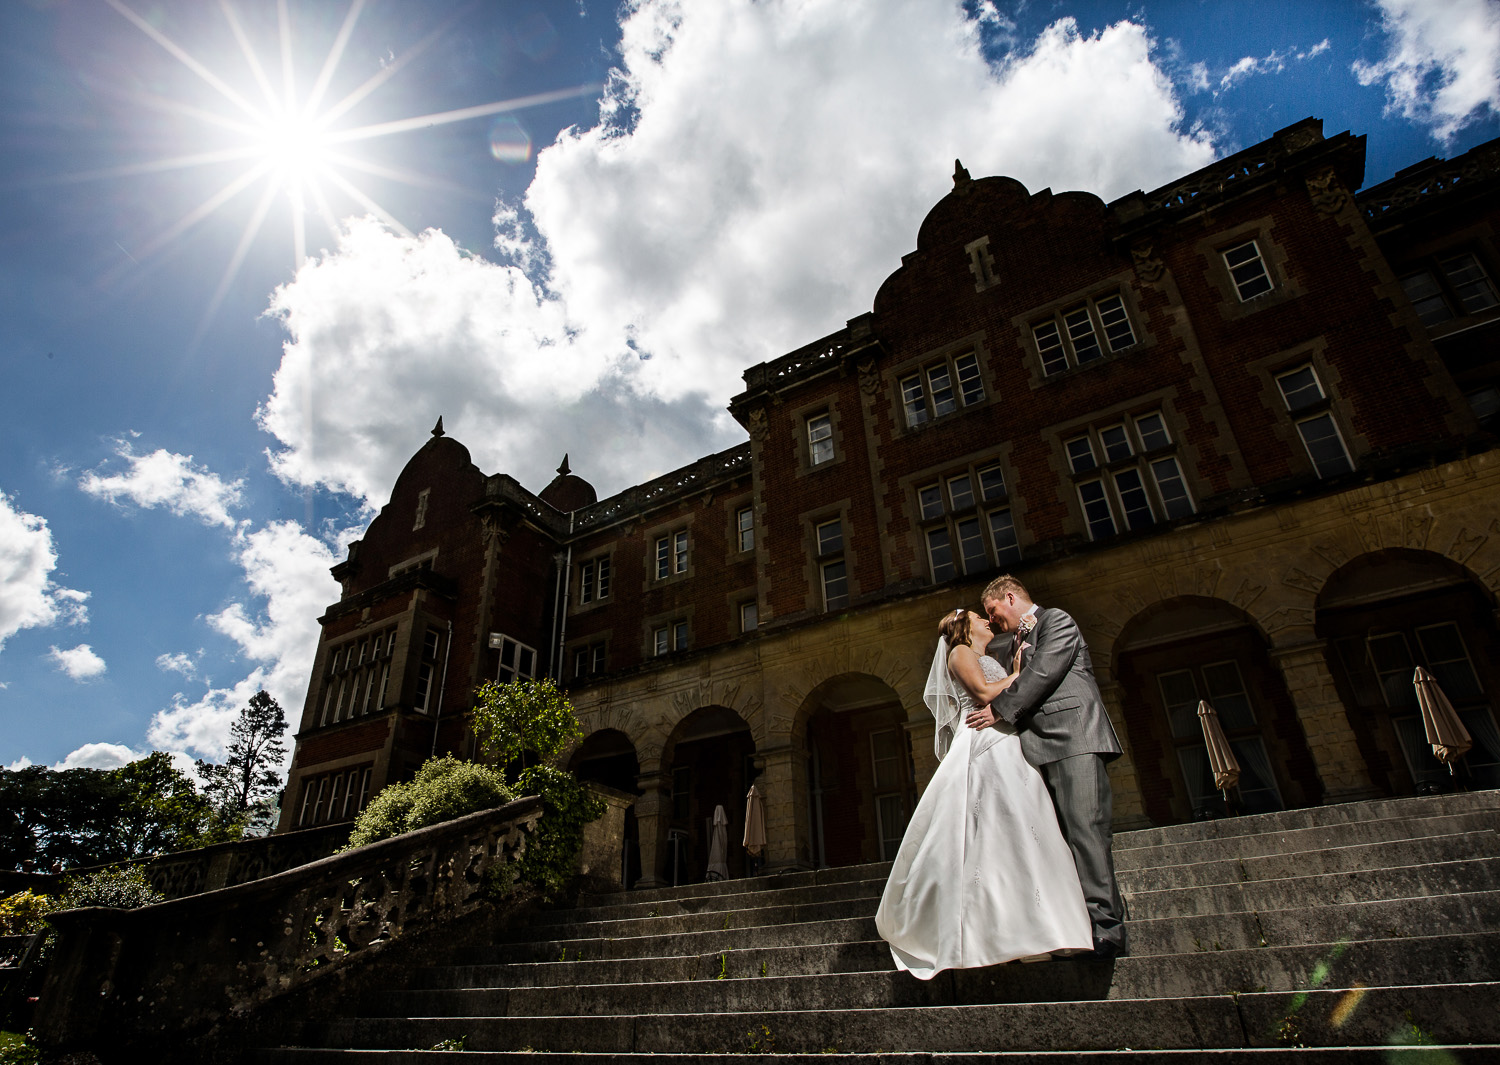 easthampstead-park-berkshire-bride-groom-sun